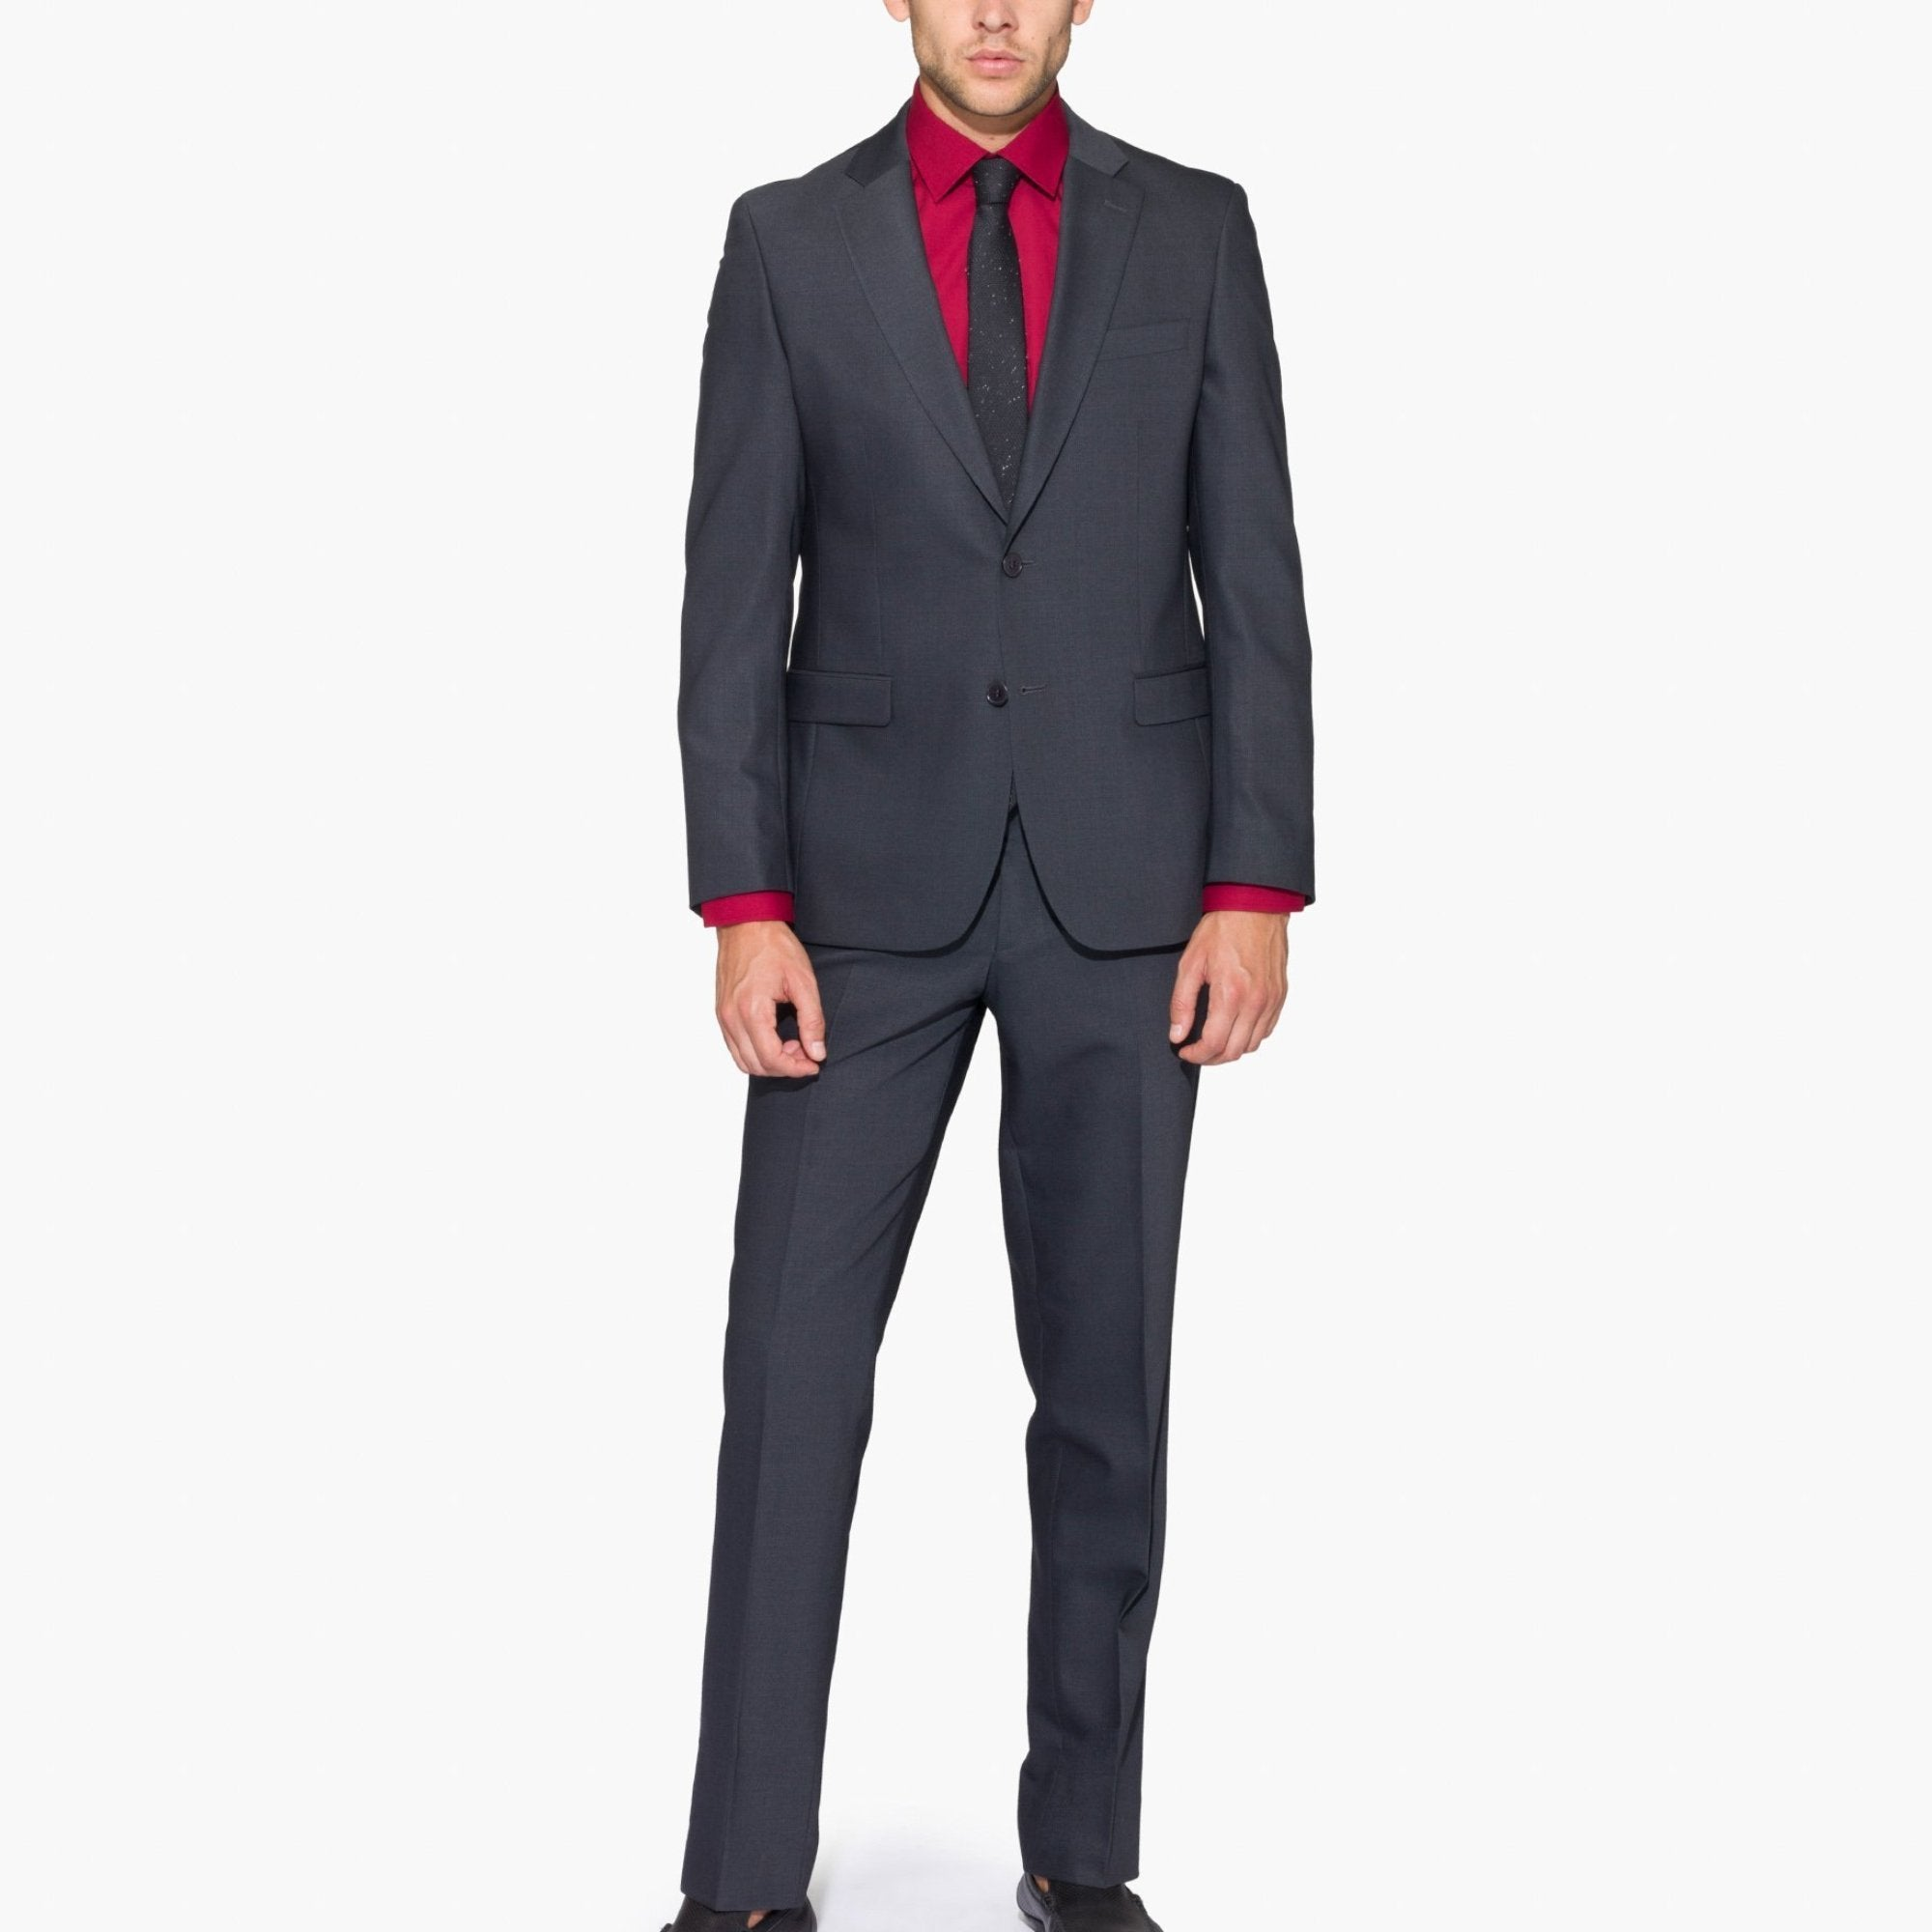 Altınyıldız Slim Fit Grey Wool Suit